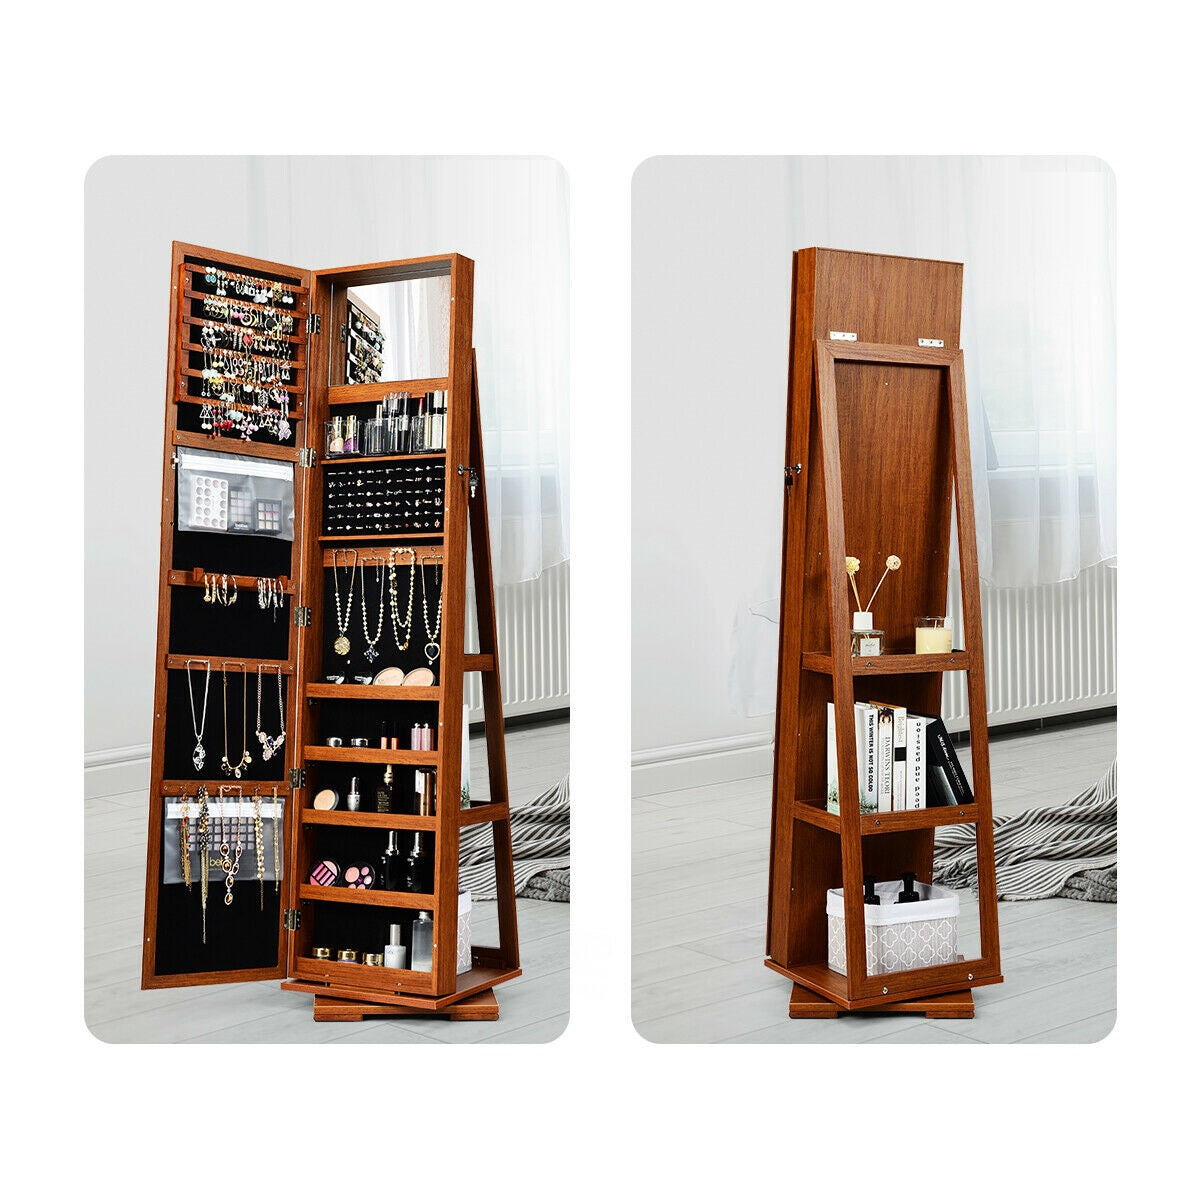 Premium Coffee Jewelry Cabinet Armoire 2-in-1 Lockable Mirrored Organizer - Morealis